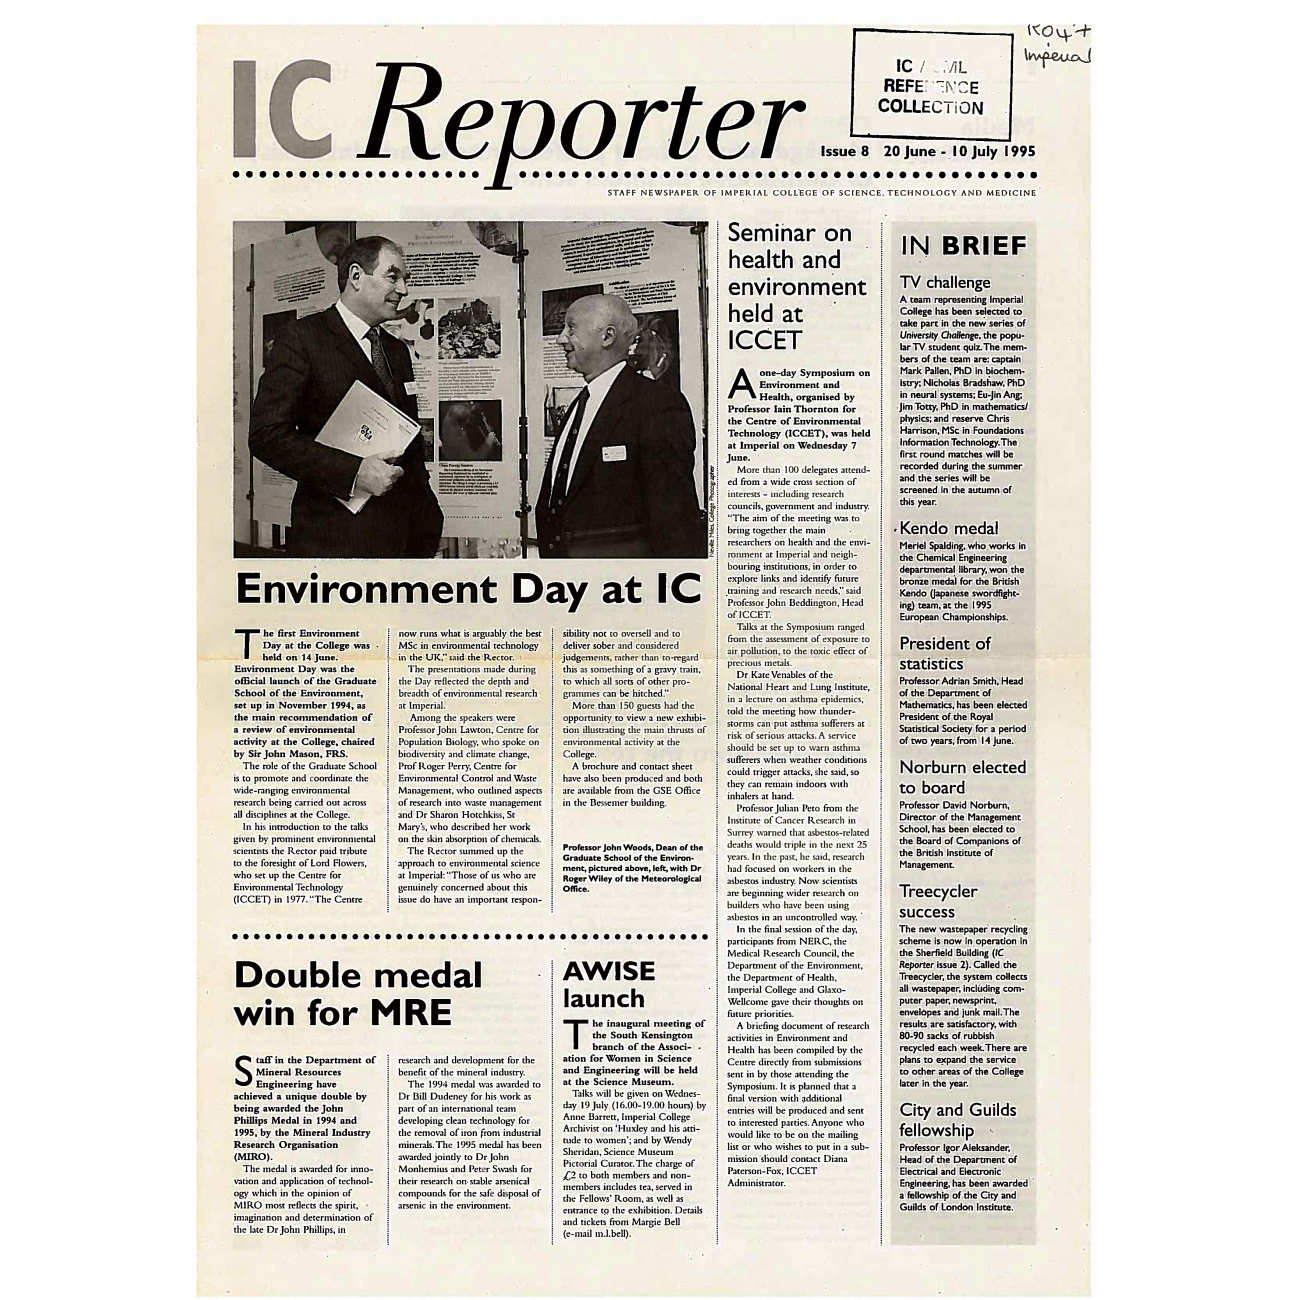 Issue 8, 20 June - 10 July 1995